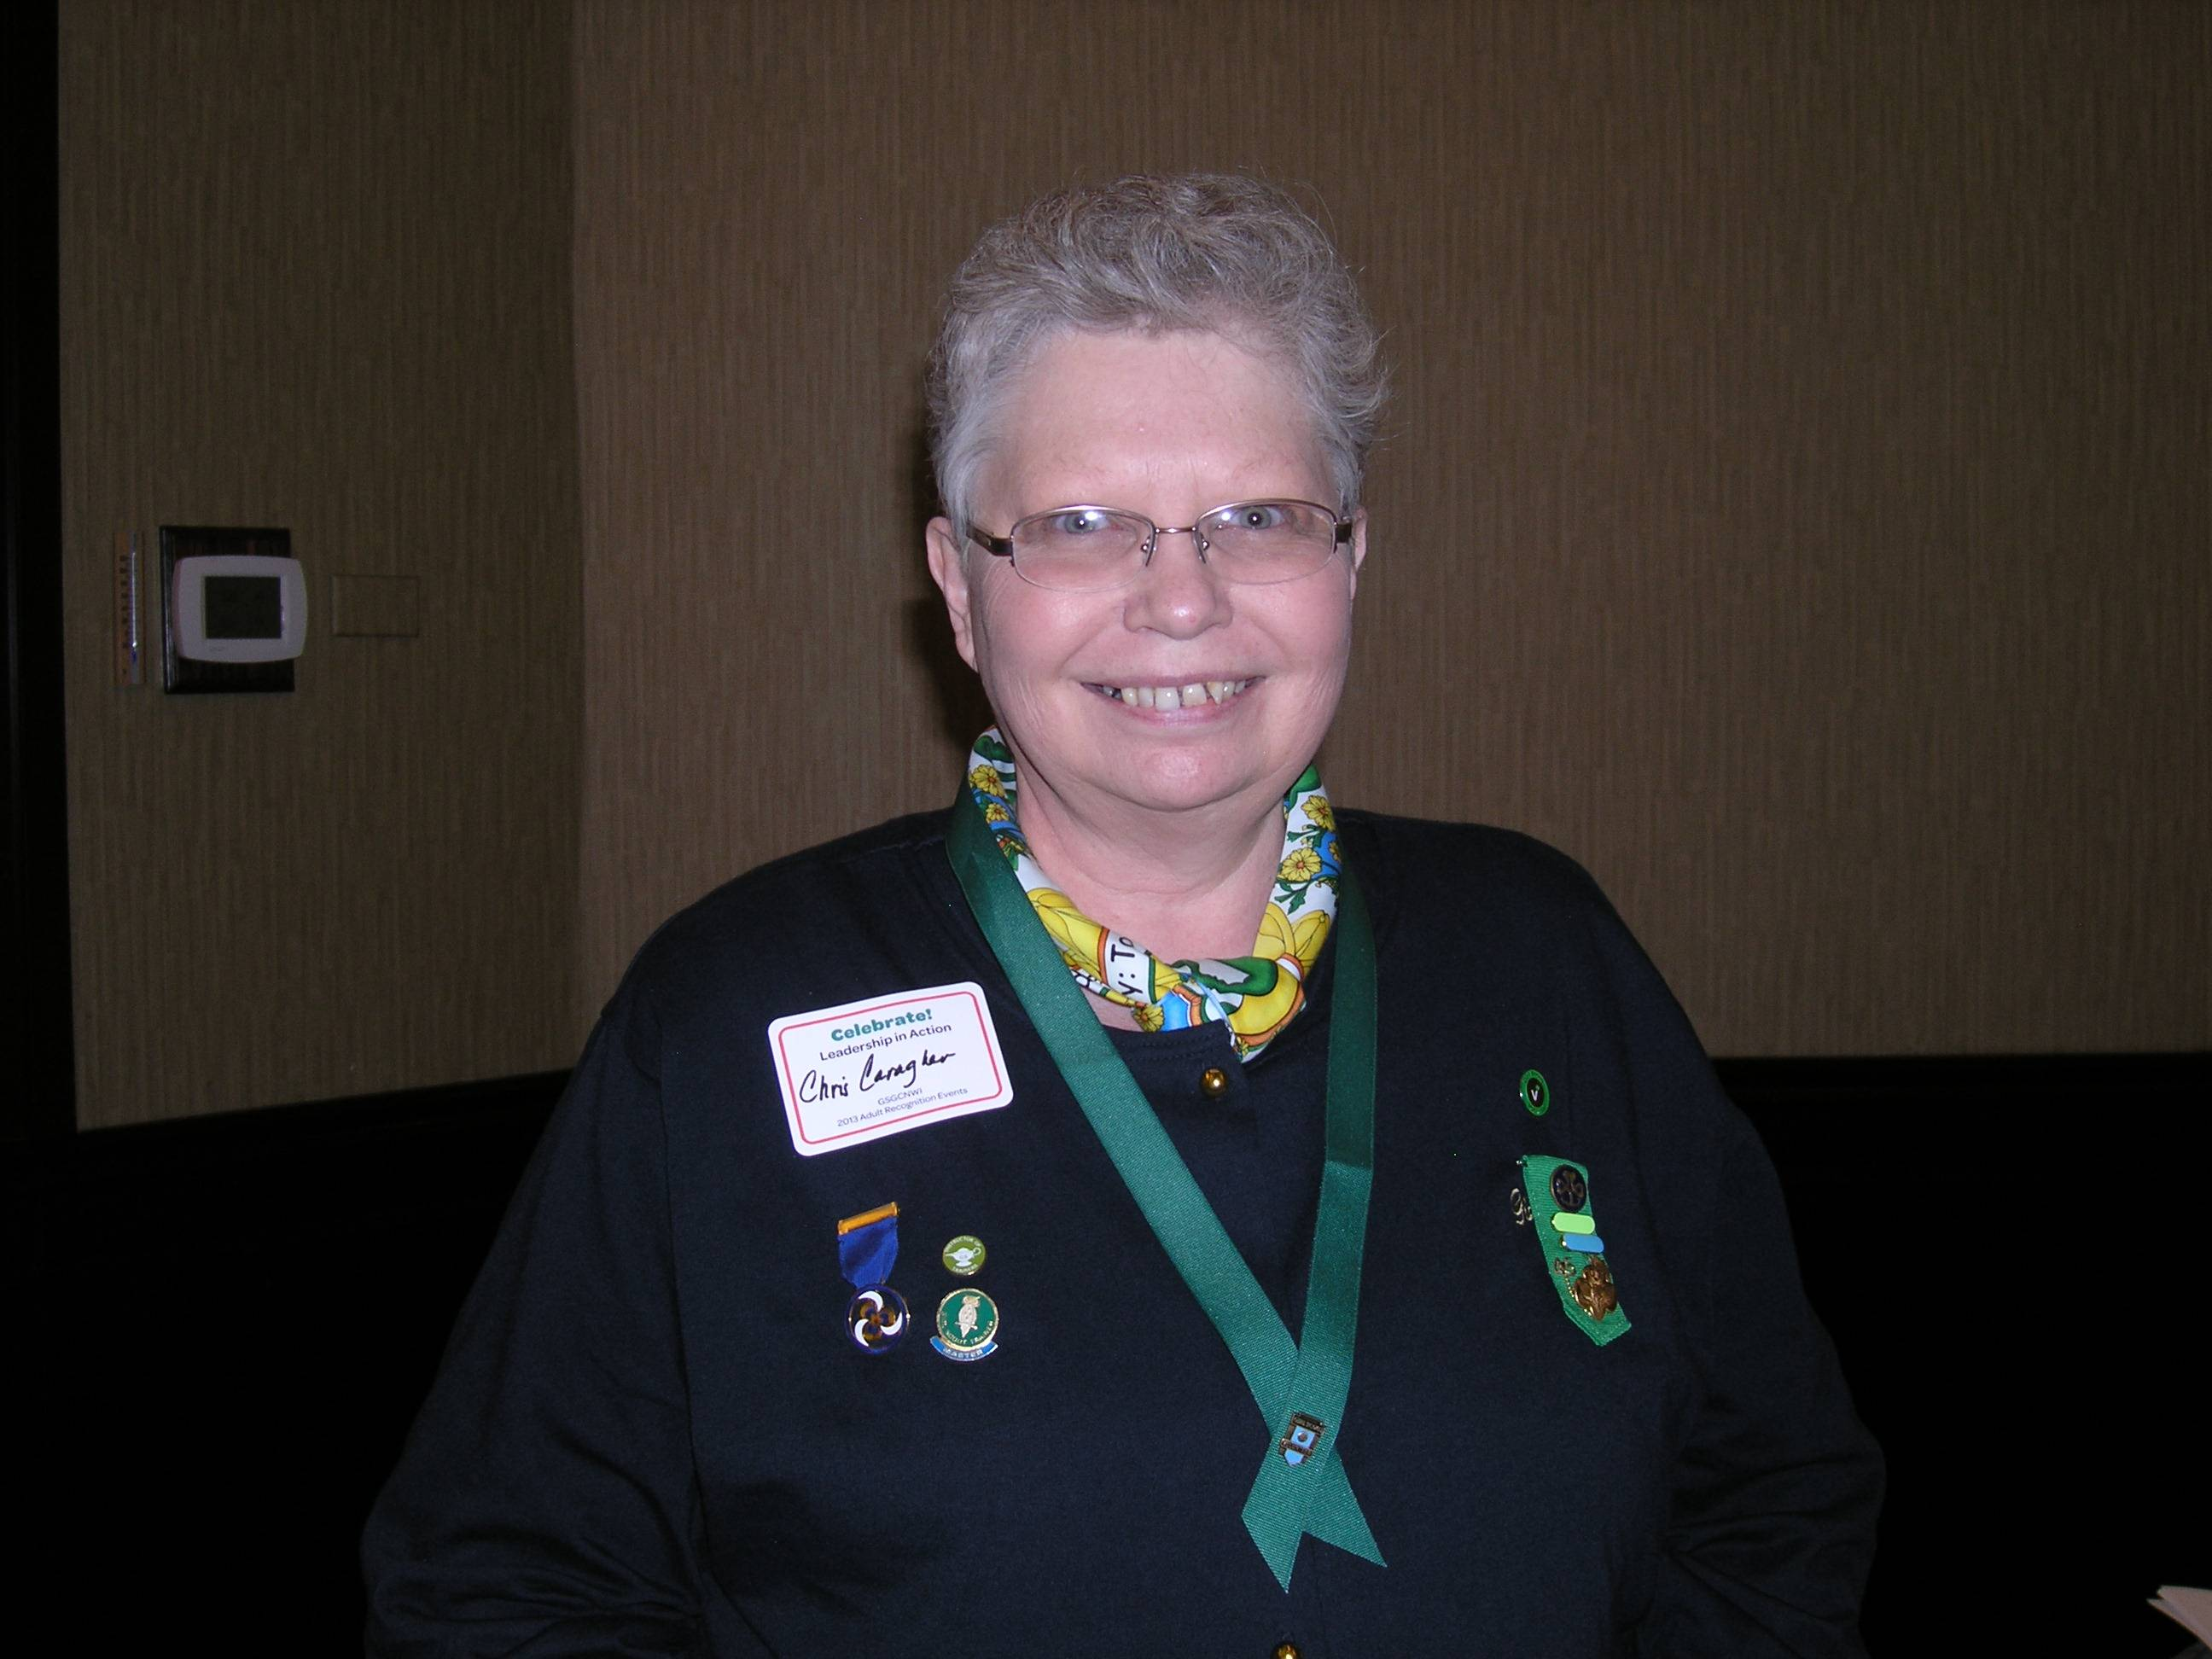 Volunteer Christine Caragher of Downers Grove